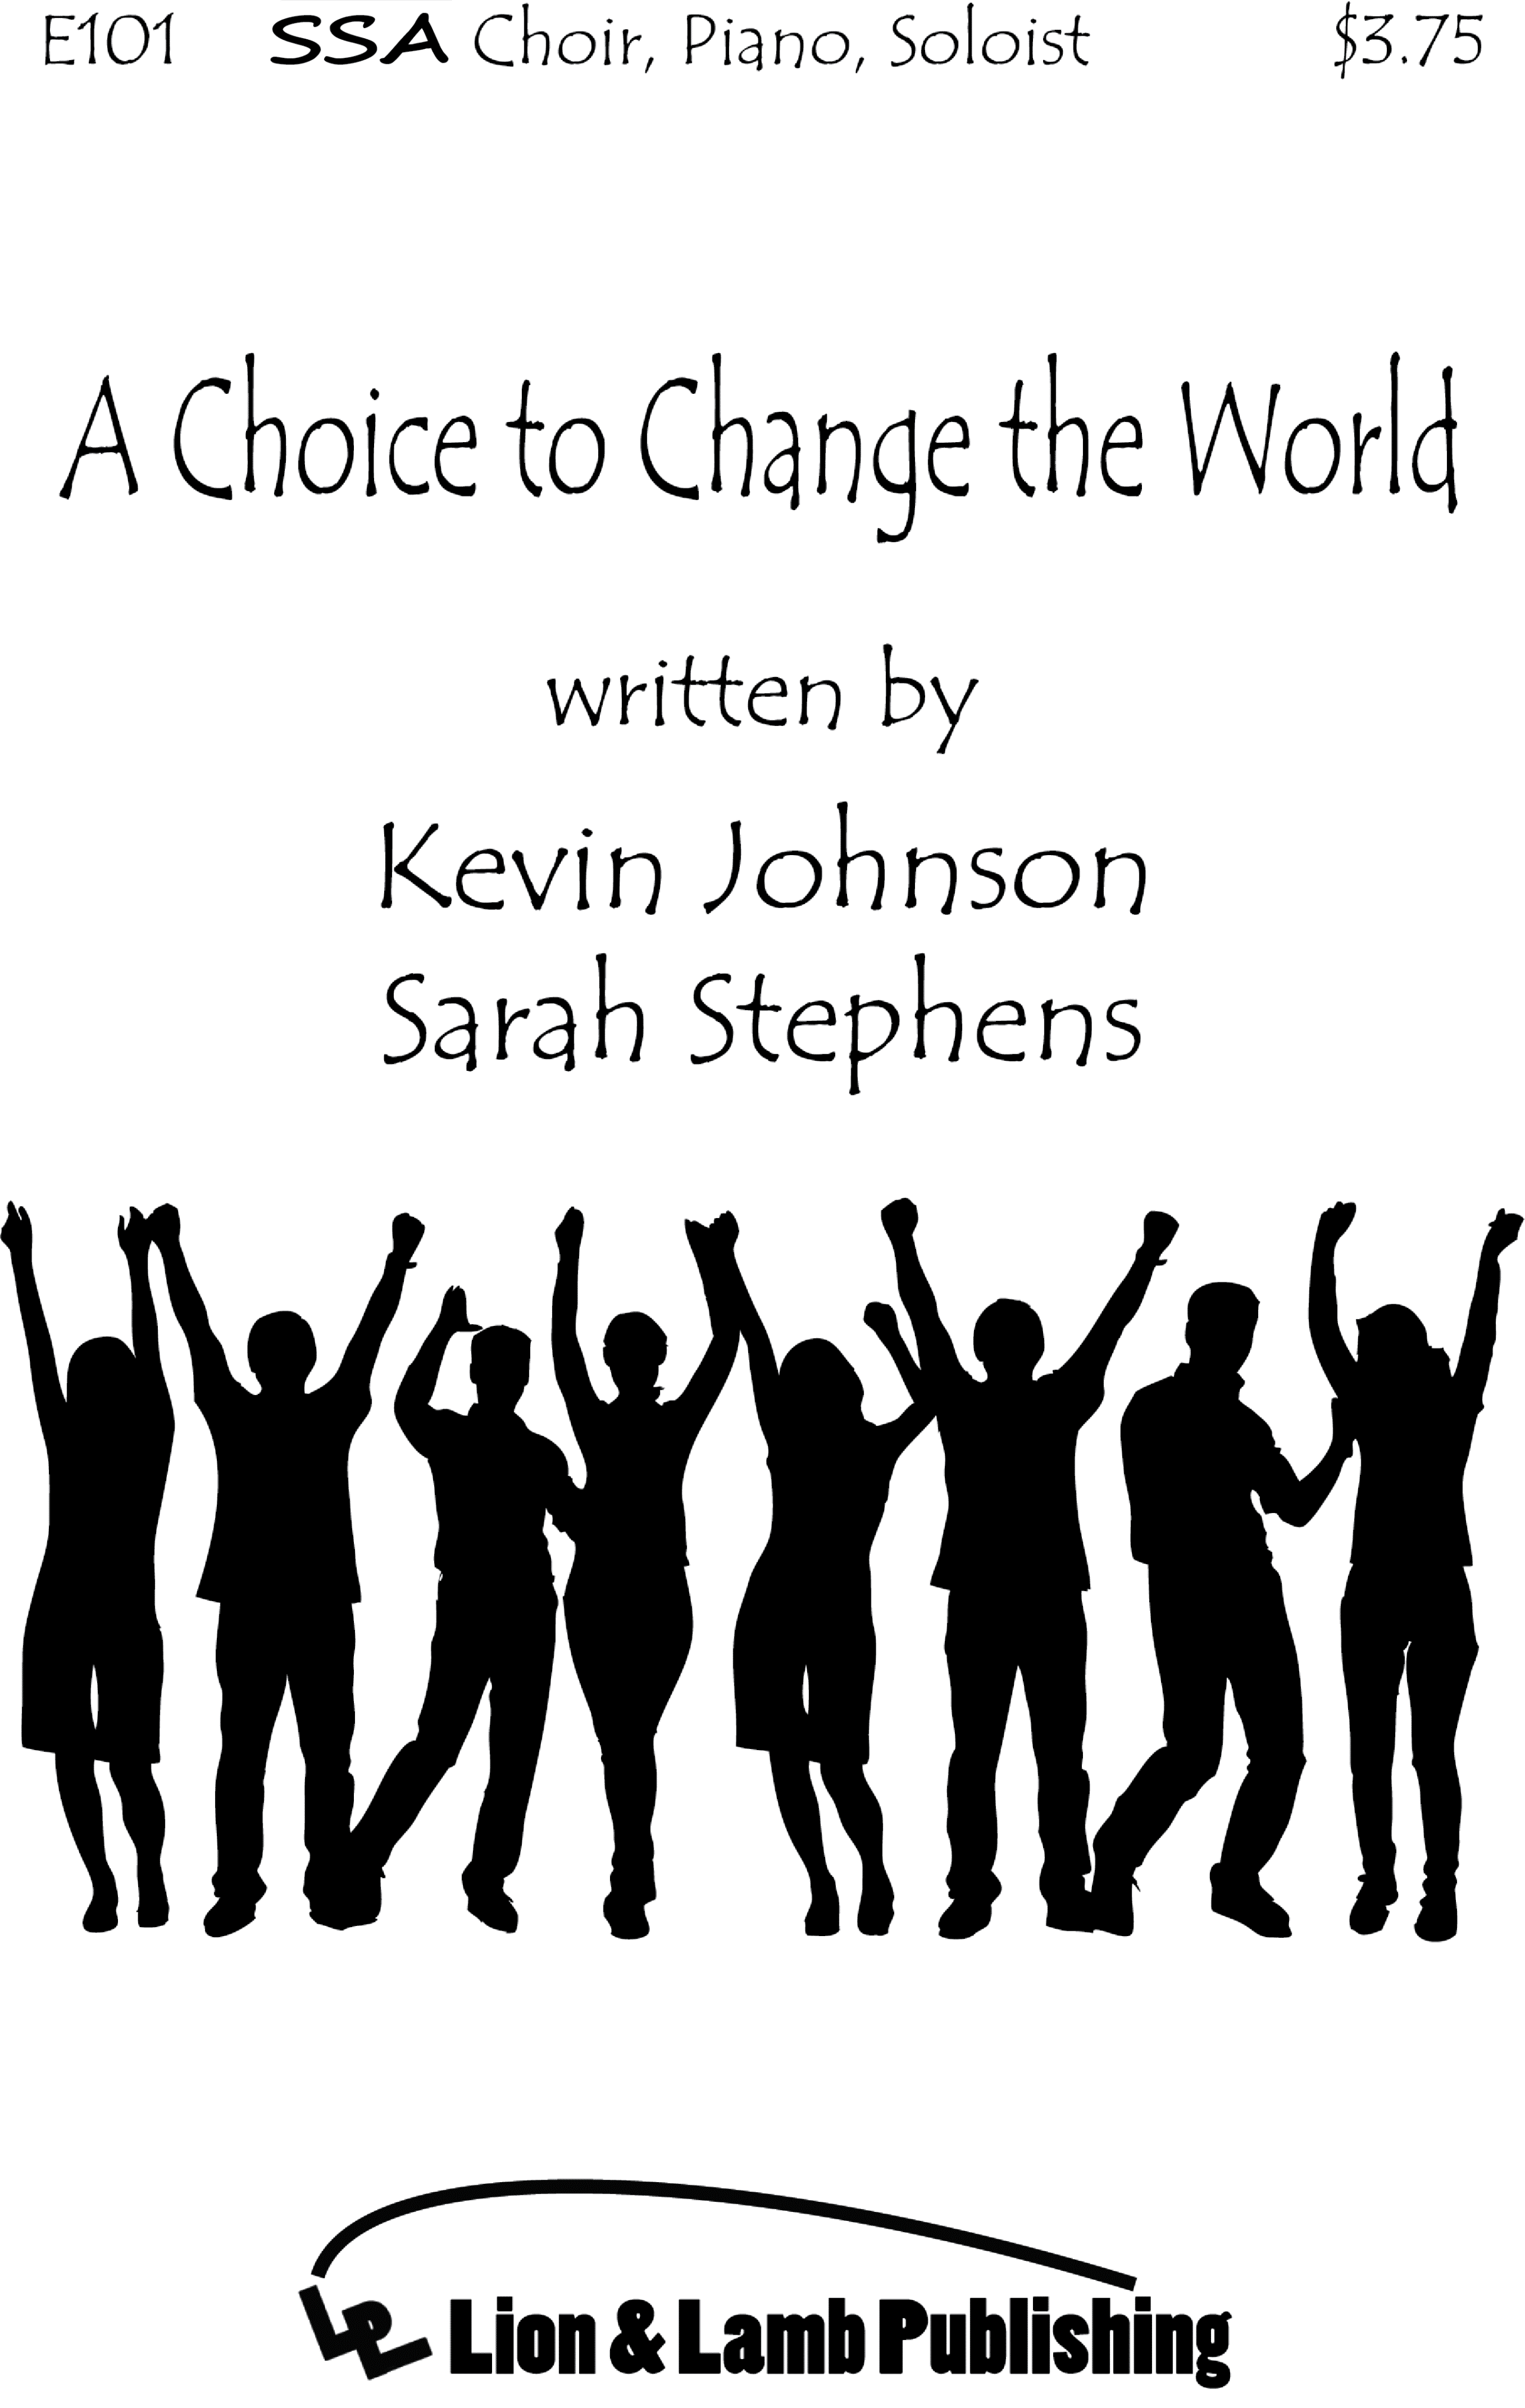 A Choice to Change the World